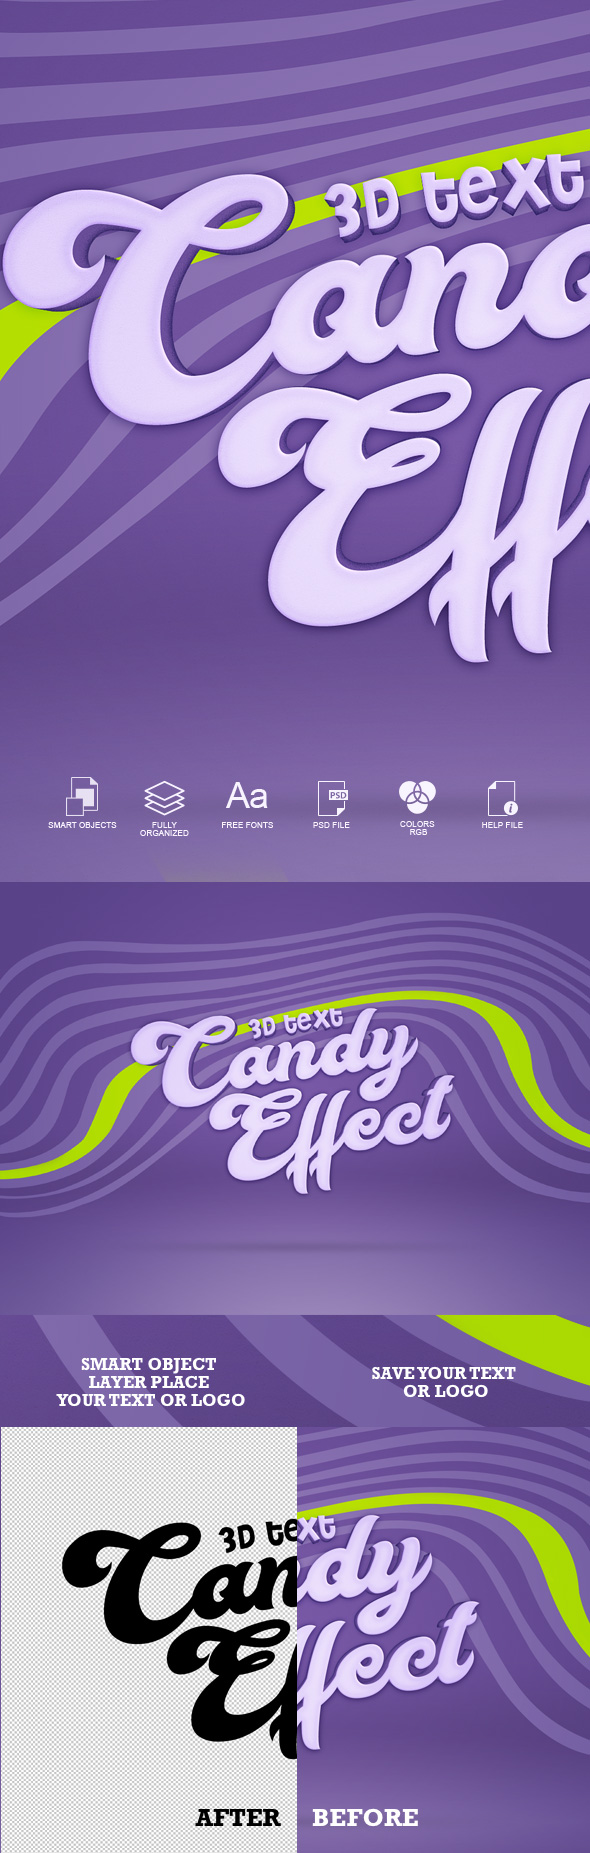 Candy 3D Text Effect - Text Effects Actions